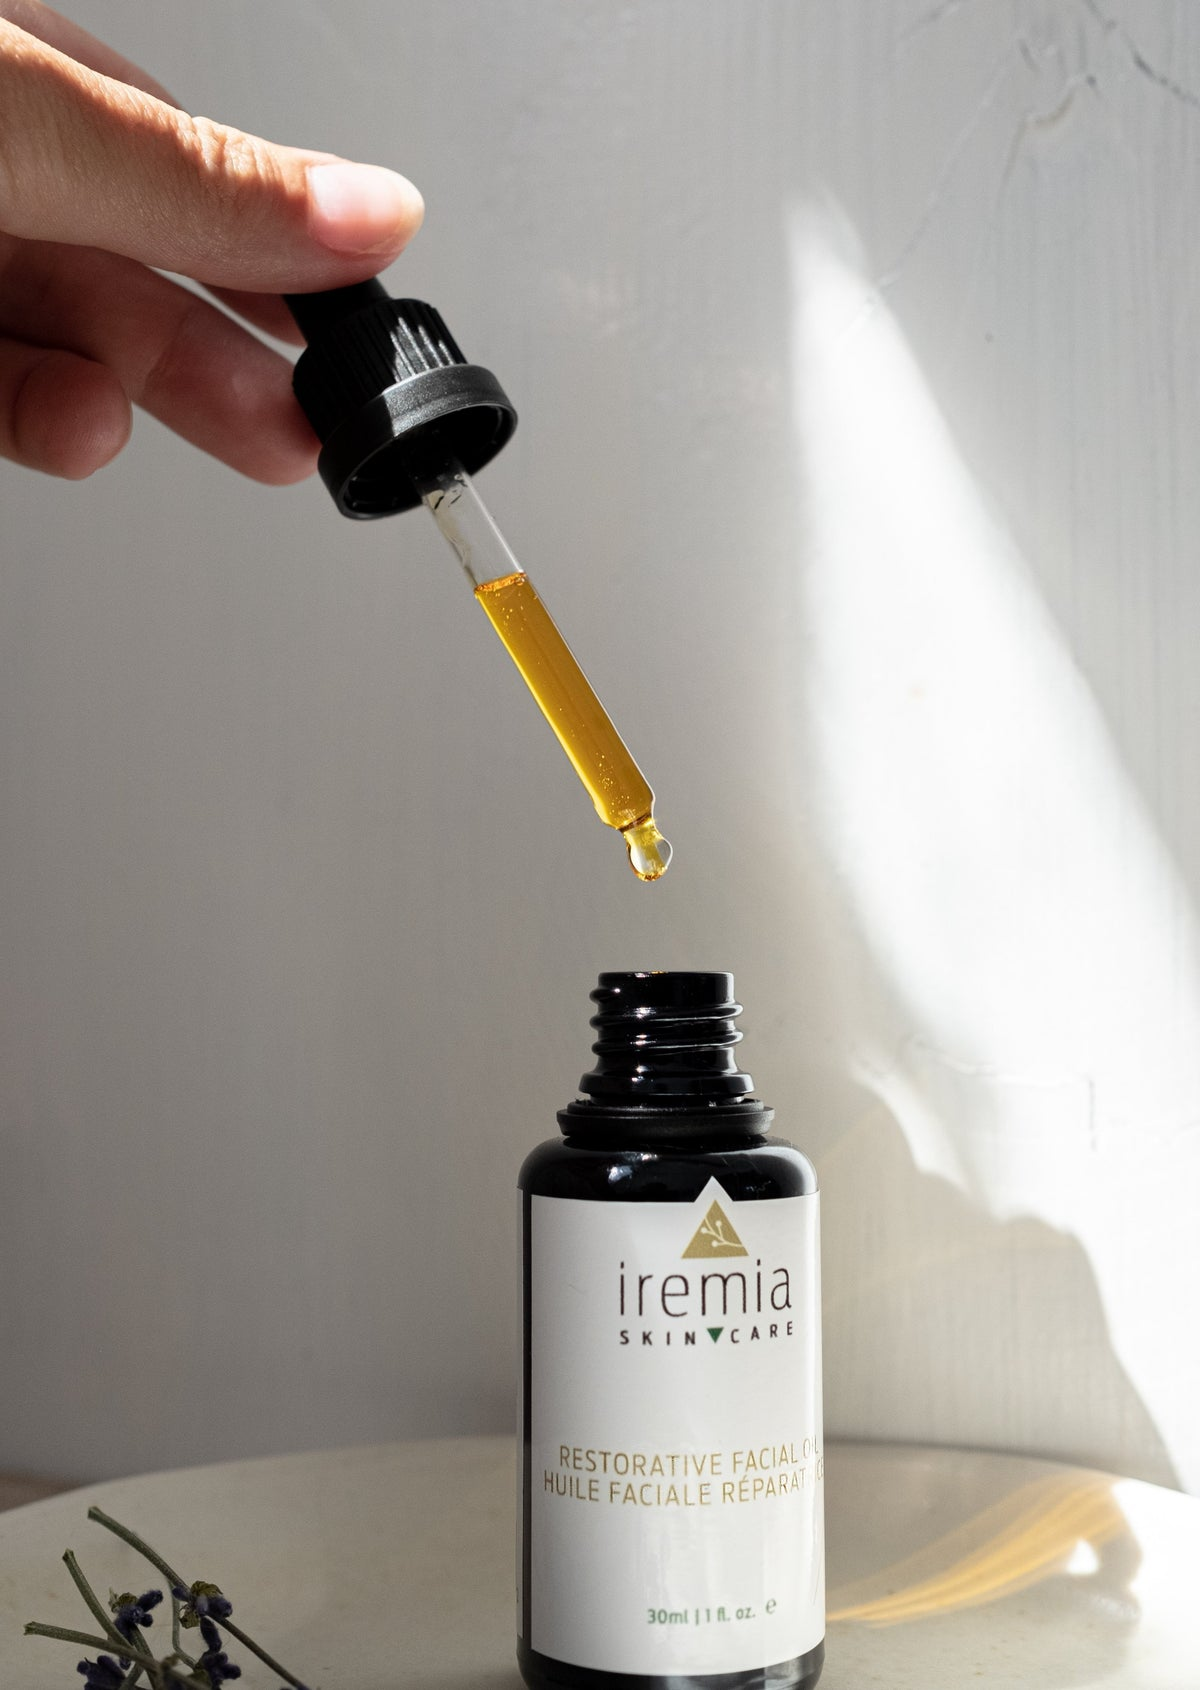 Iremia Skincare Restorative Facial Oil and the Nara Jade Facial Roller. A perfect pair for your sensitive skin to nourish and tone your skin. The best minimalist routine using clean ingredients for your sensitive skin.